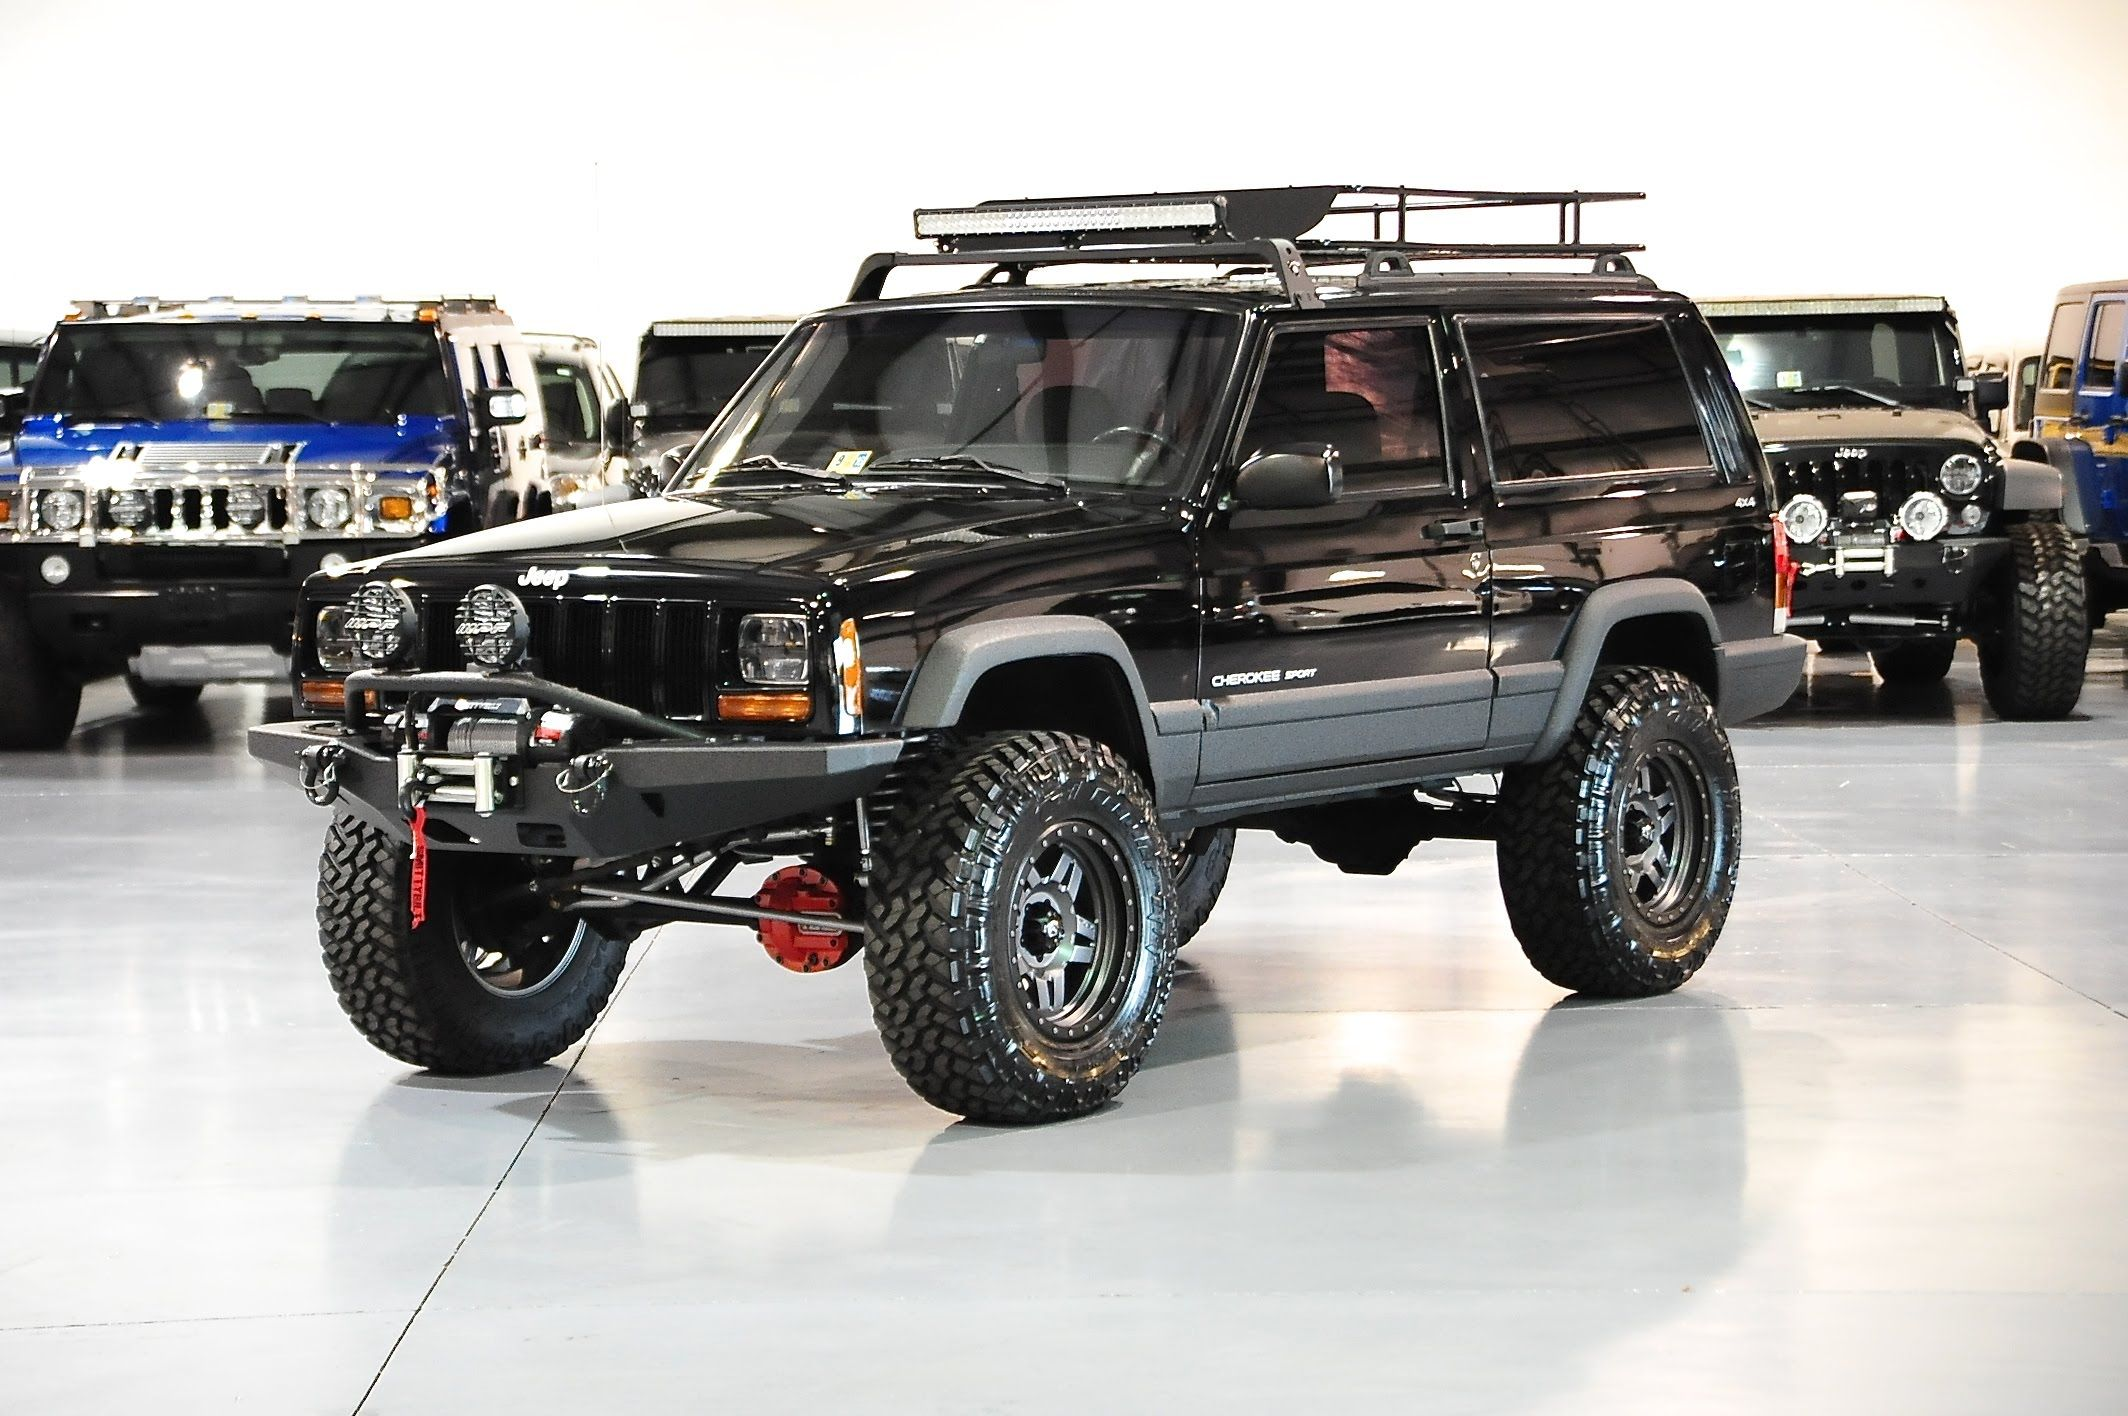 Davis autosports 2 door lifted built cherokee xj sport for sale